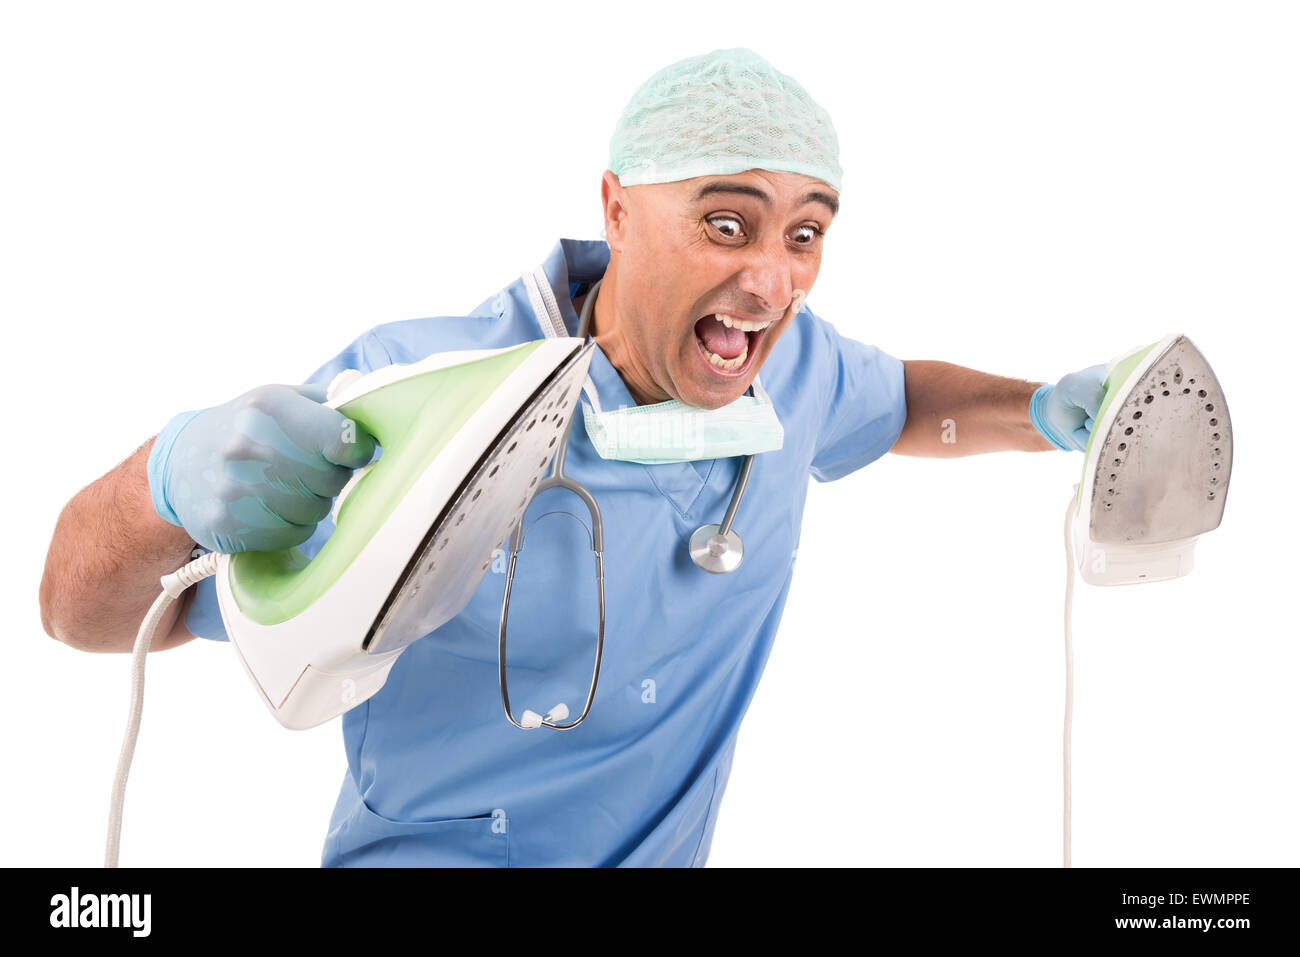 doctor with irons ready for defribillation - Stock Image